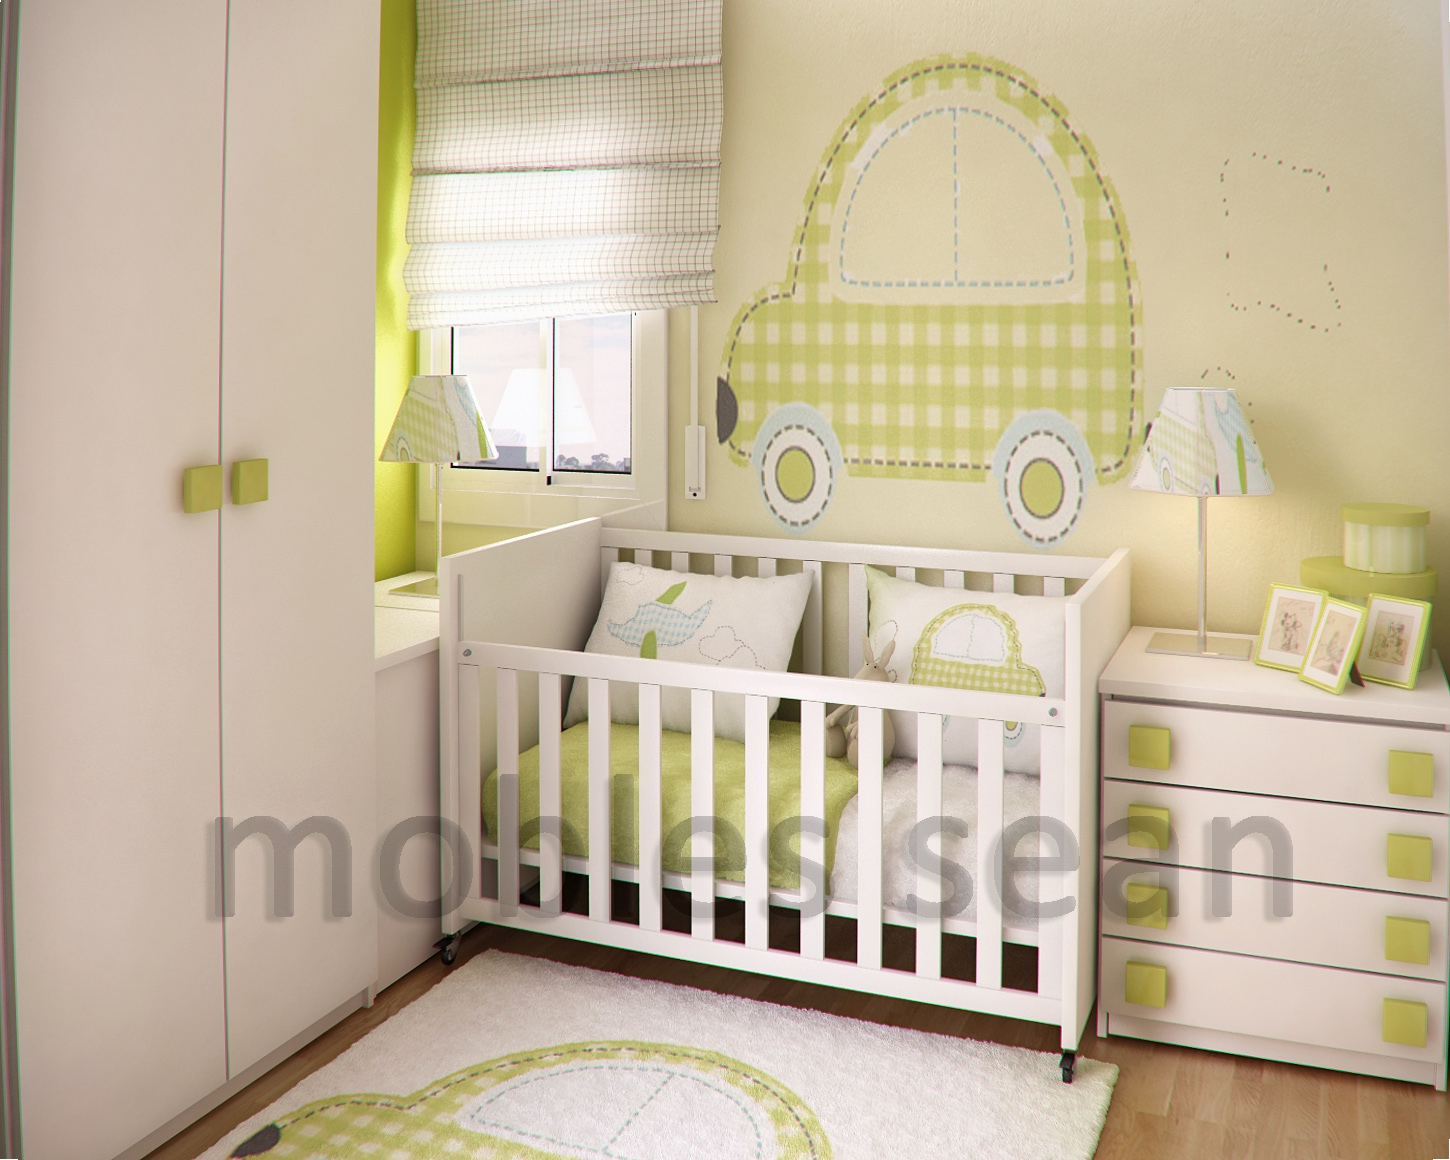 Space saving designs for small kids rooms - Baby rooms idees ...